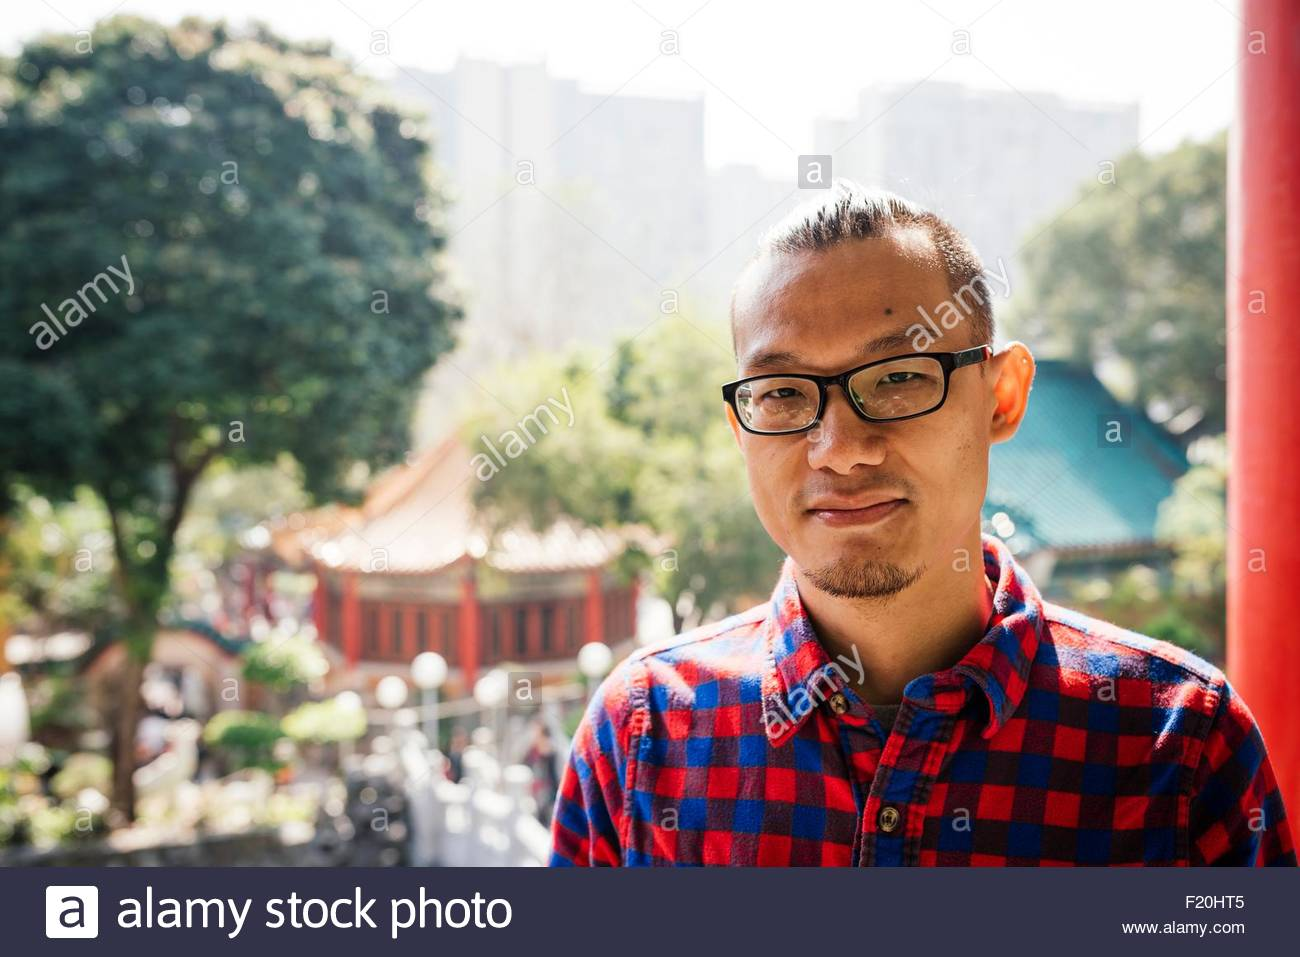 Portrait of young man wearing glasses and checked shirt in front of traditional pagoda, looking at camera - Stock Image